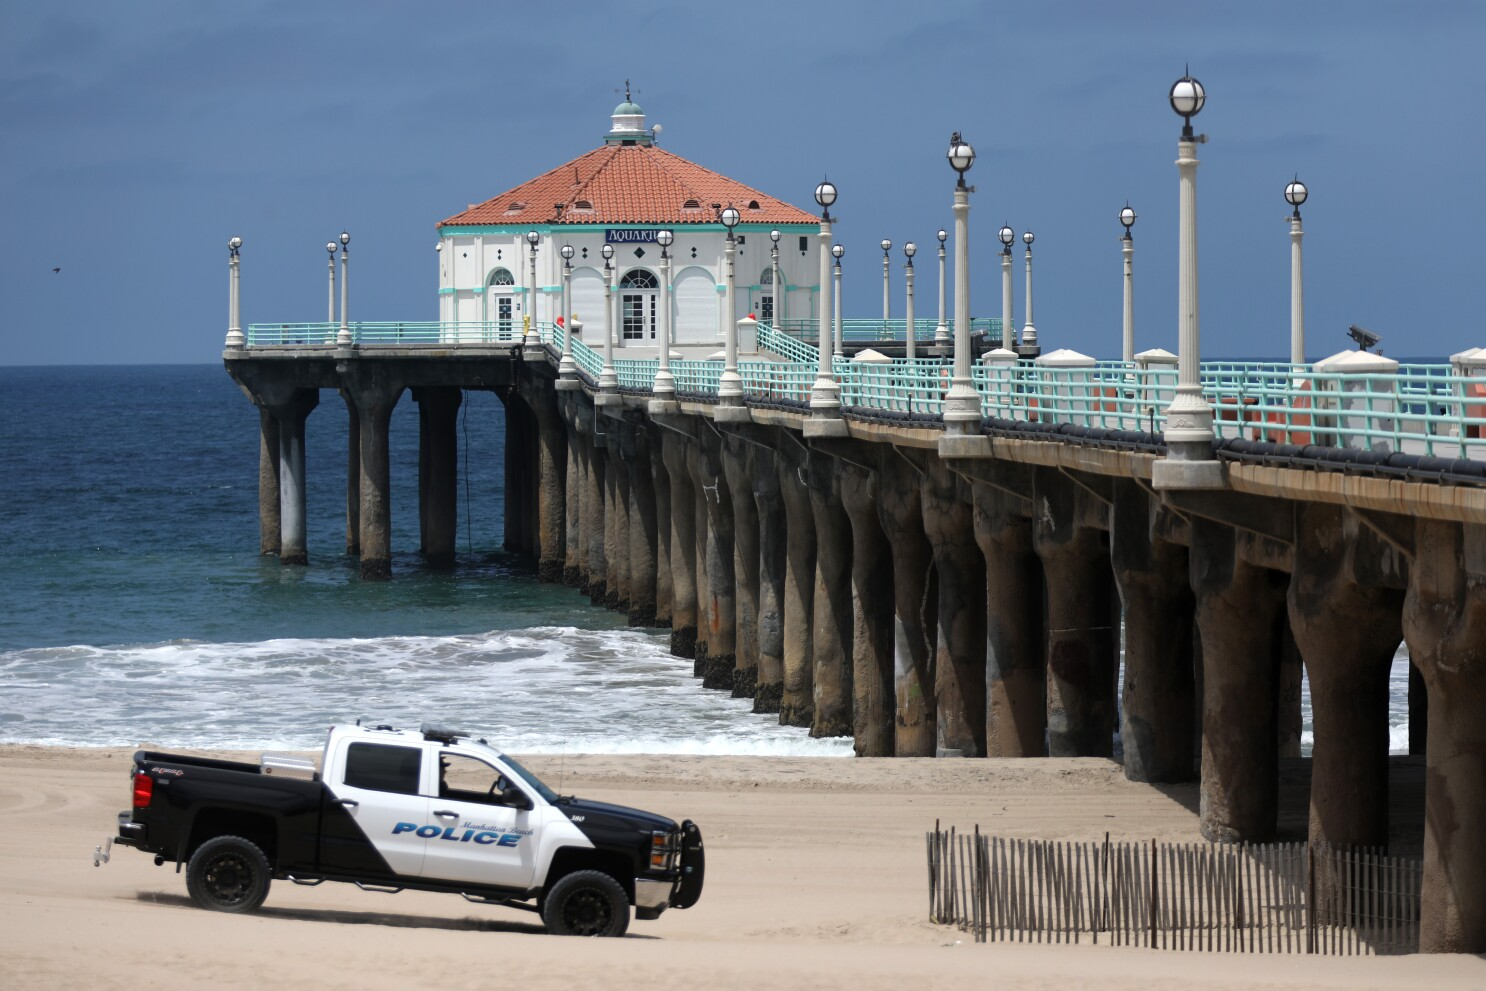 Coronavirus Manhattan Beach Will Fine Those Without Masks Los Angeles Times